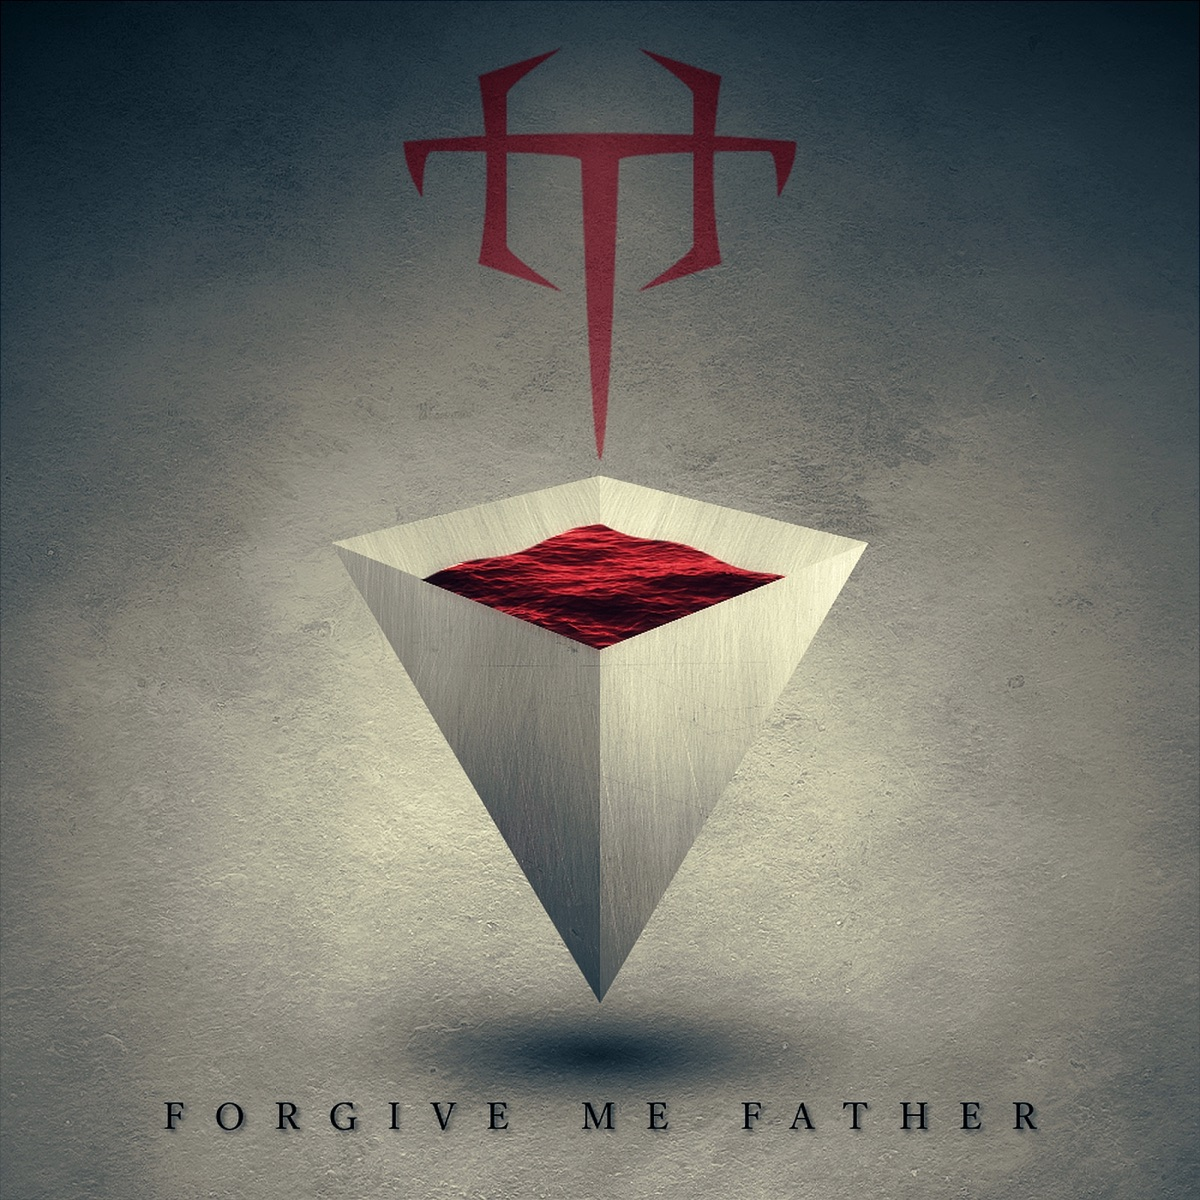 Forgive Me Father - Single End Time Design CD cover